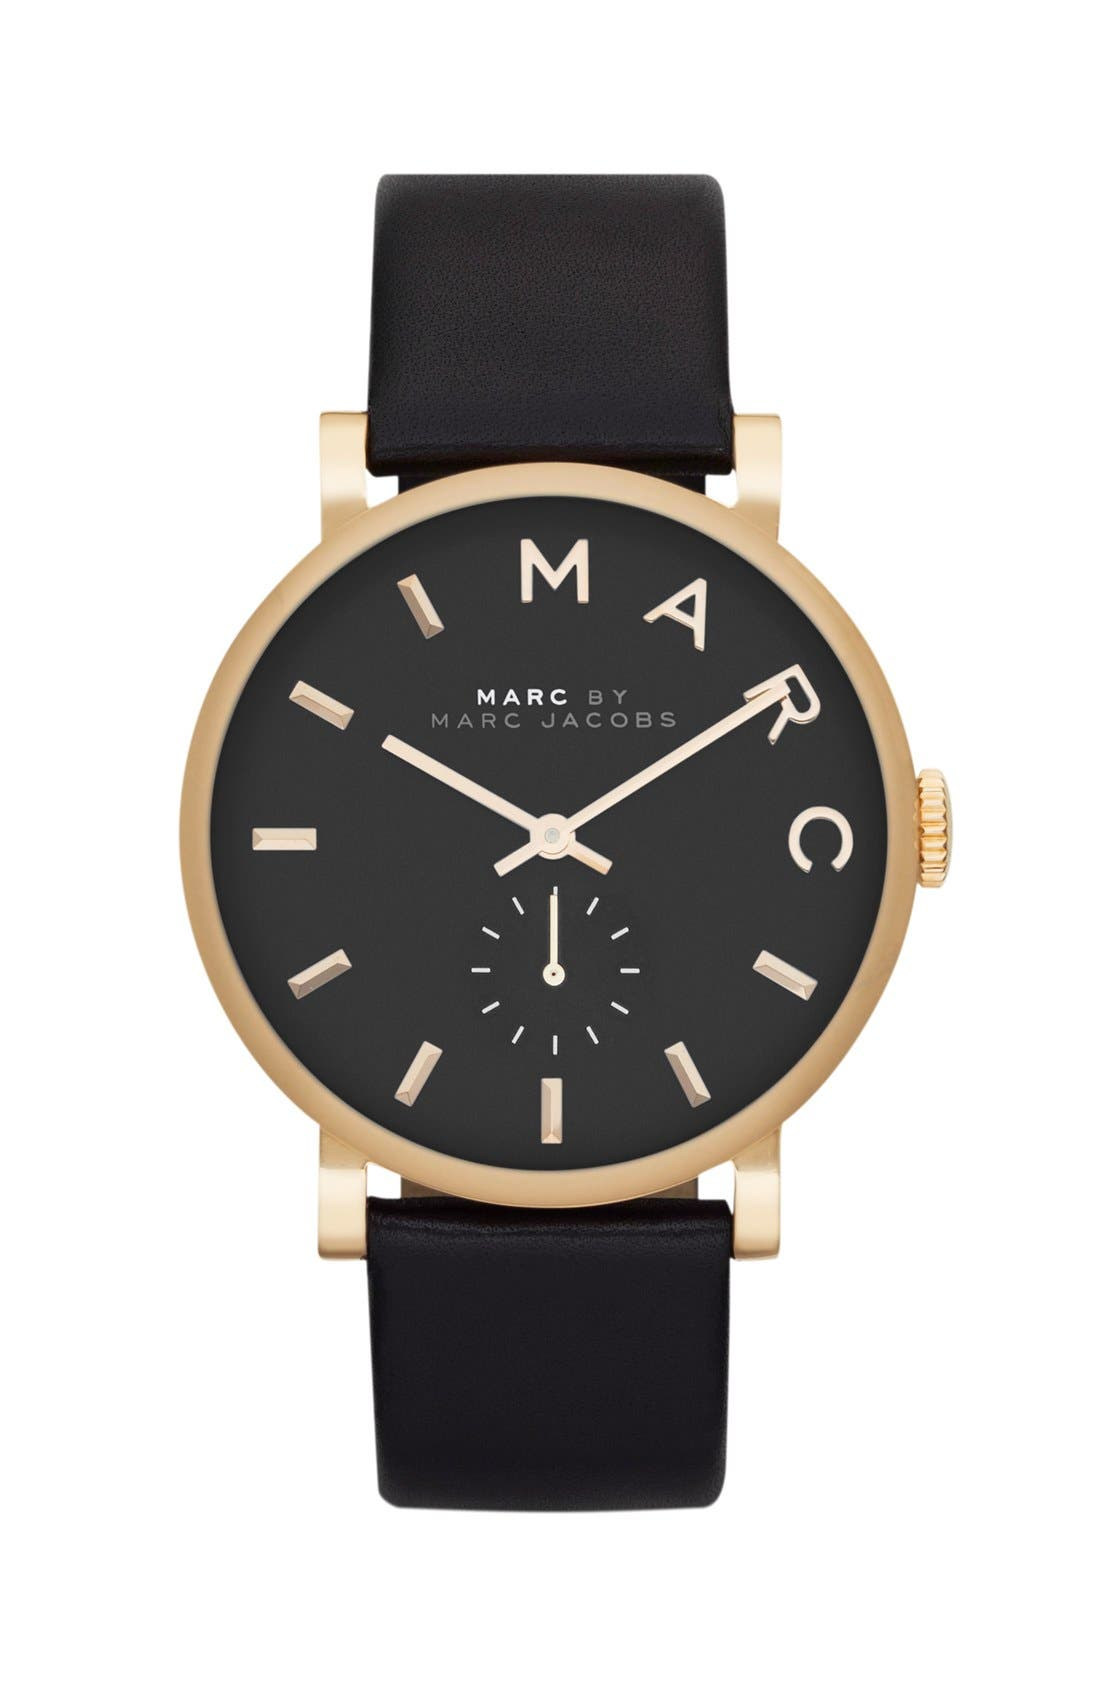 MARC JACOBS, 'Baker' Leather Strap Watch, 37mm, Alternate thumbnail 2, color, 001